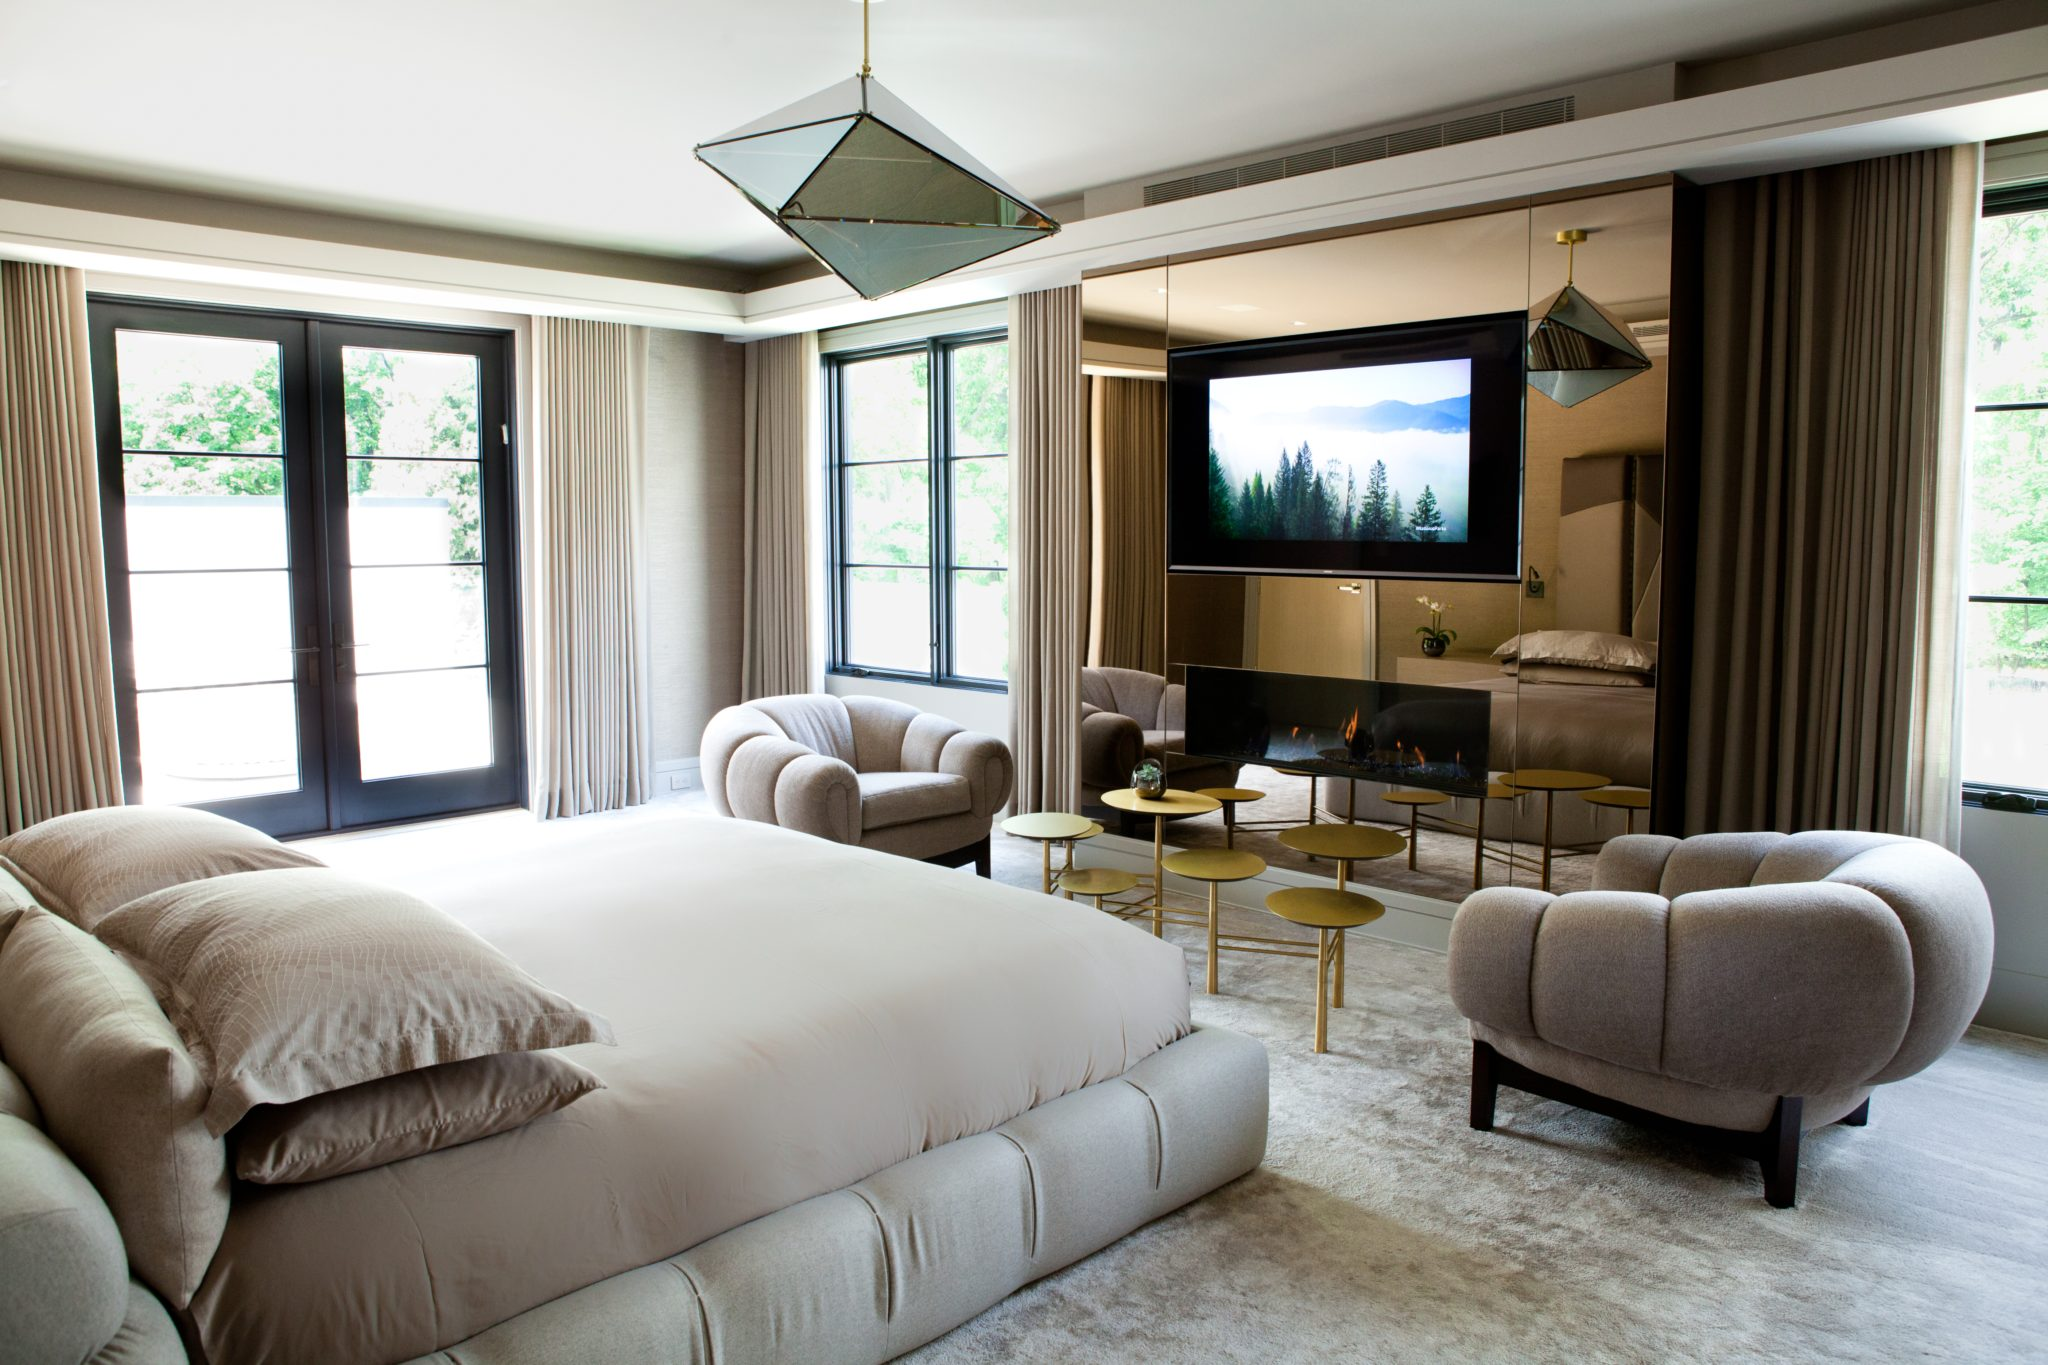 Tenafly Modern bedroom Tufty time bed and Bec Britain light by Jessica Gersten Interiors